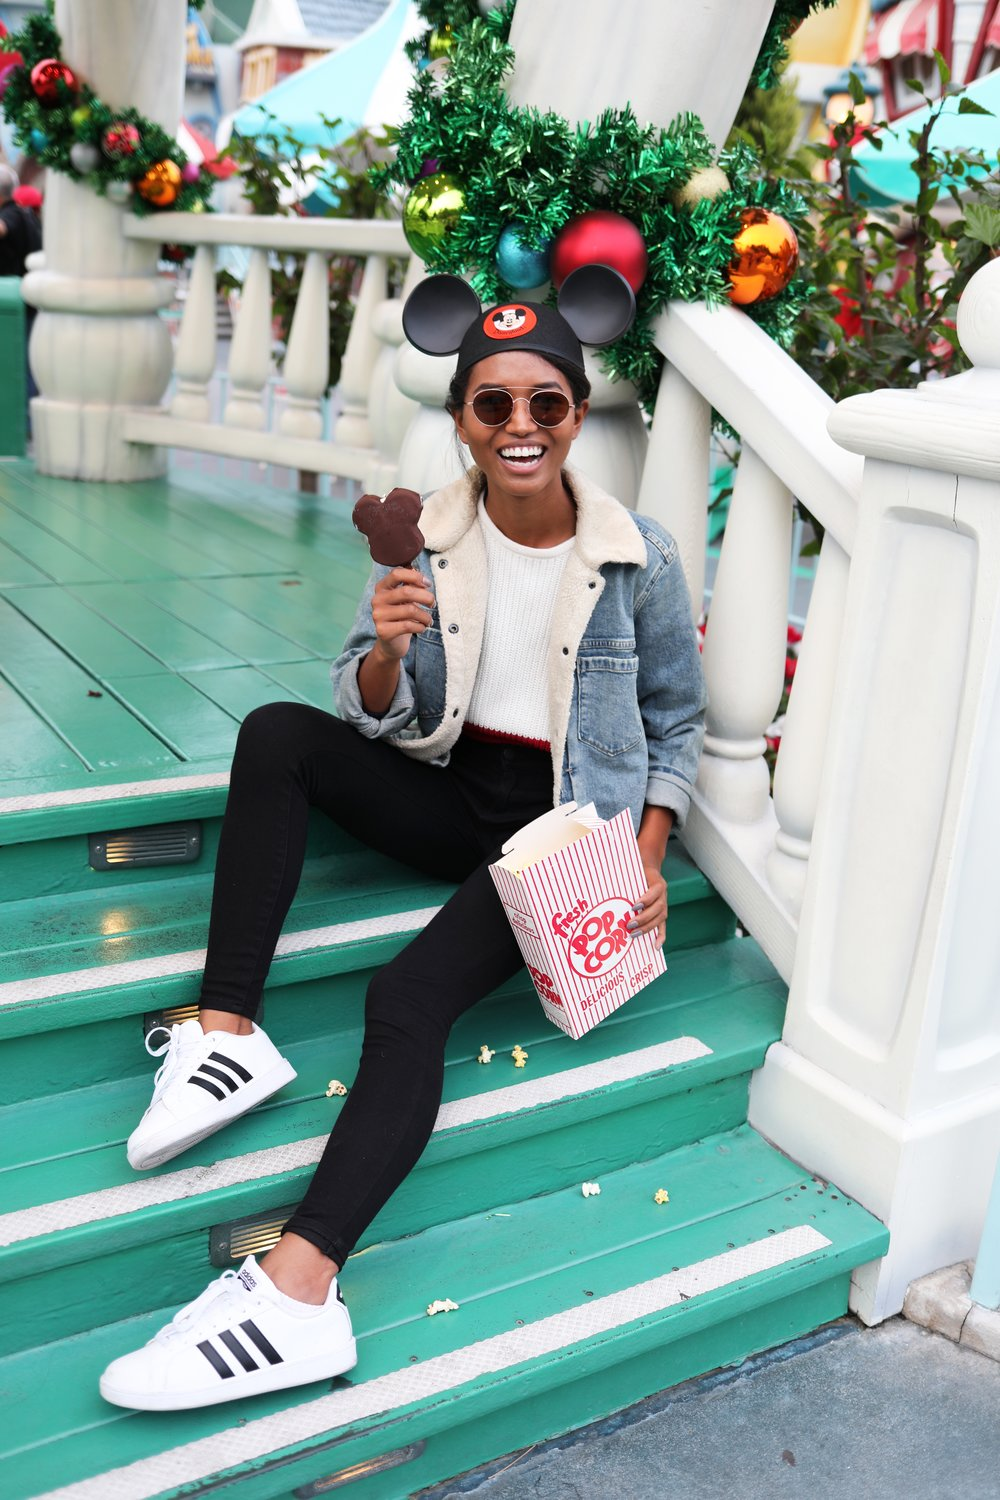 Nikki wearing the kensie 'inside out' while snacking on some Disney treats in Toon Town!